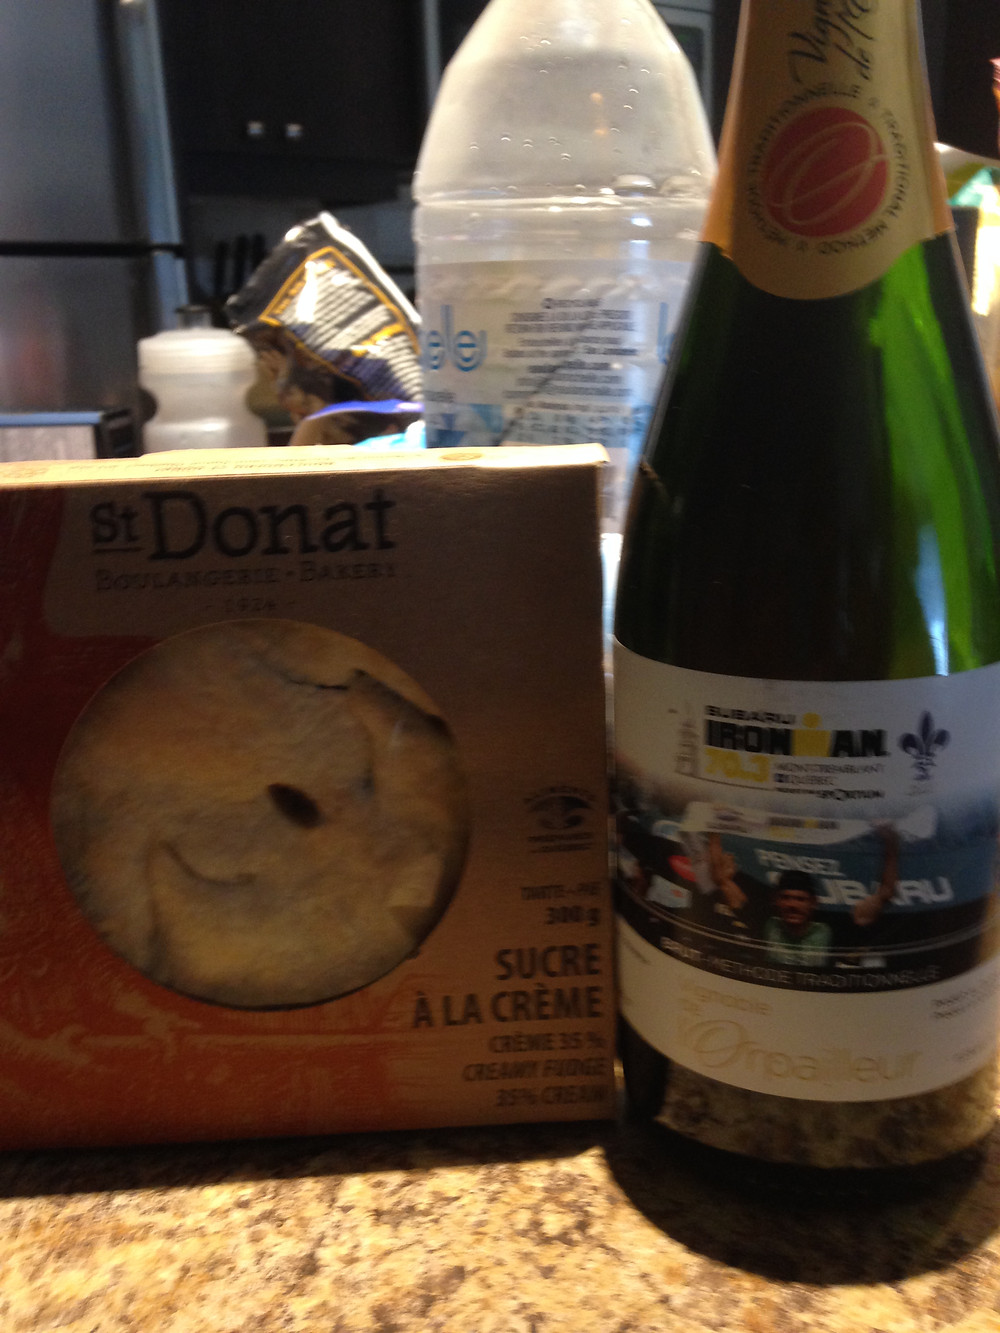 Pre race spoils for the pros. The wine label features last year's winner.